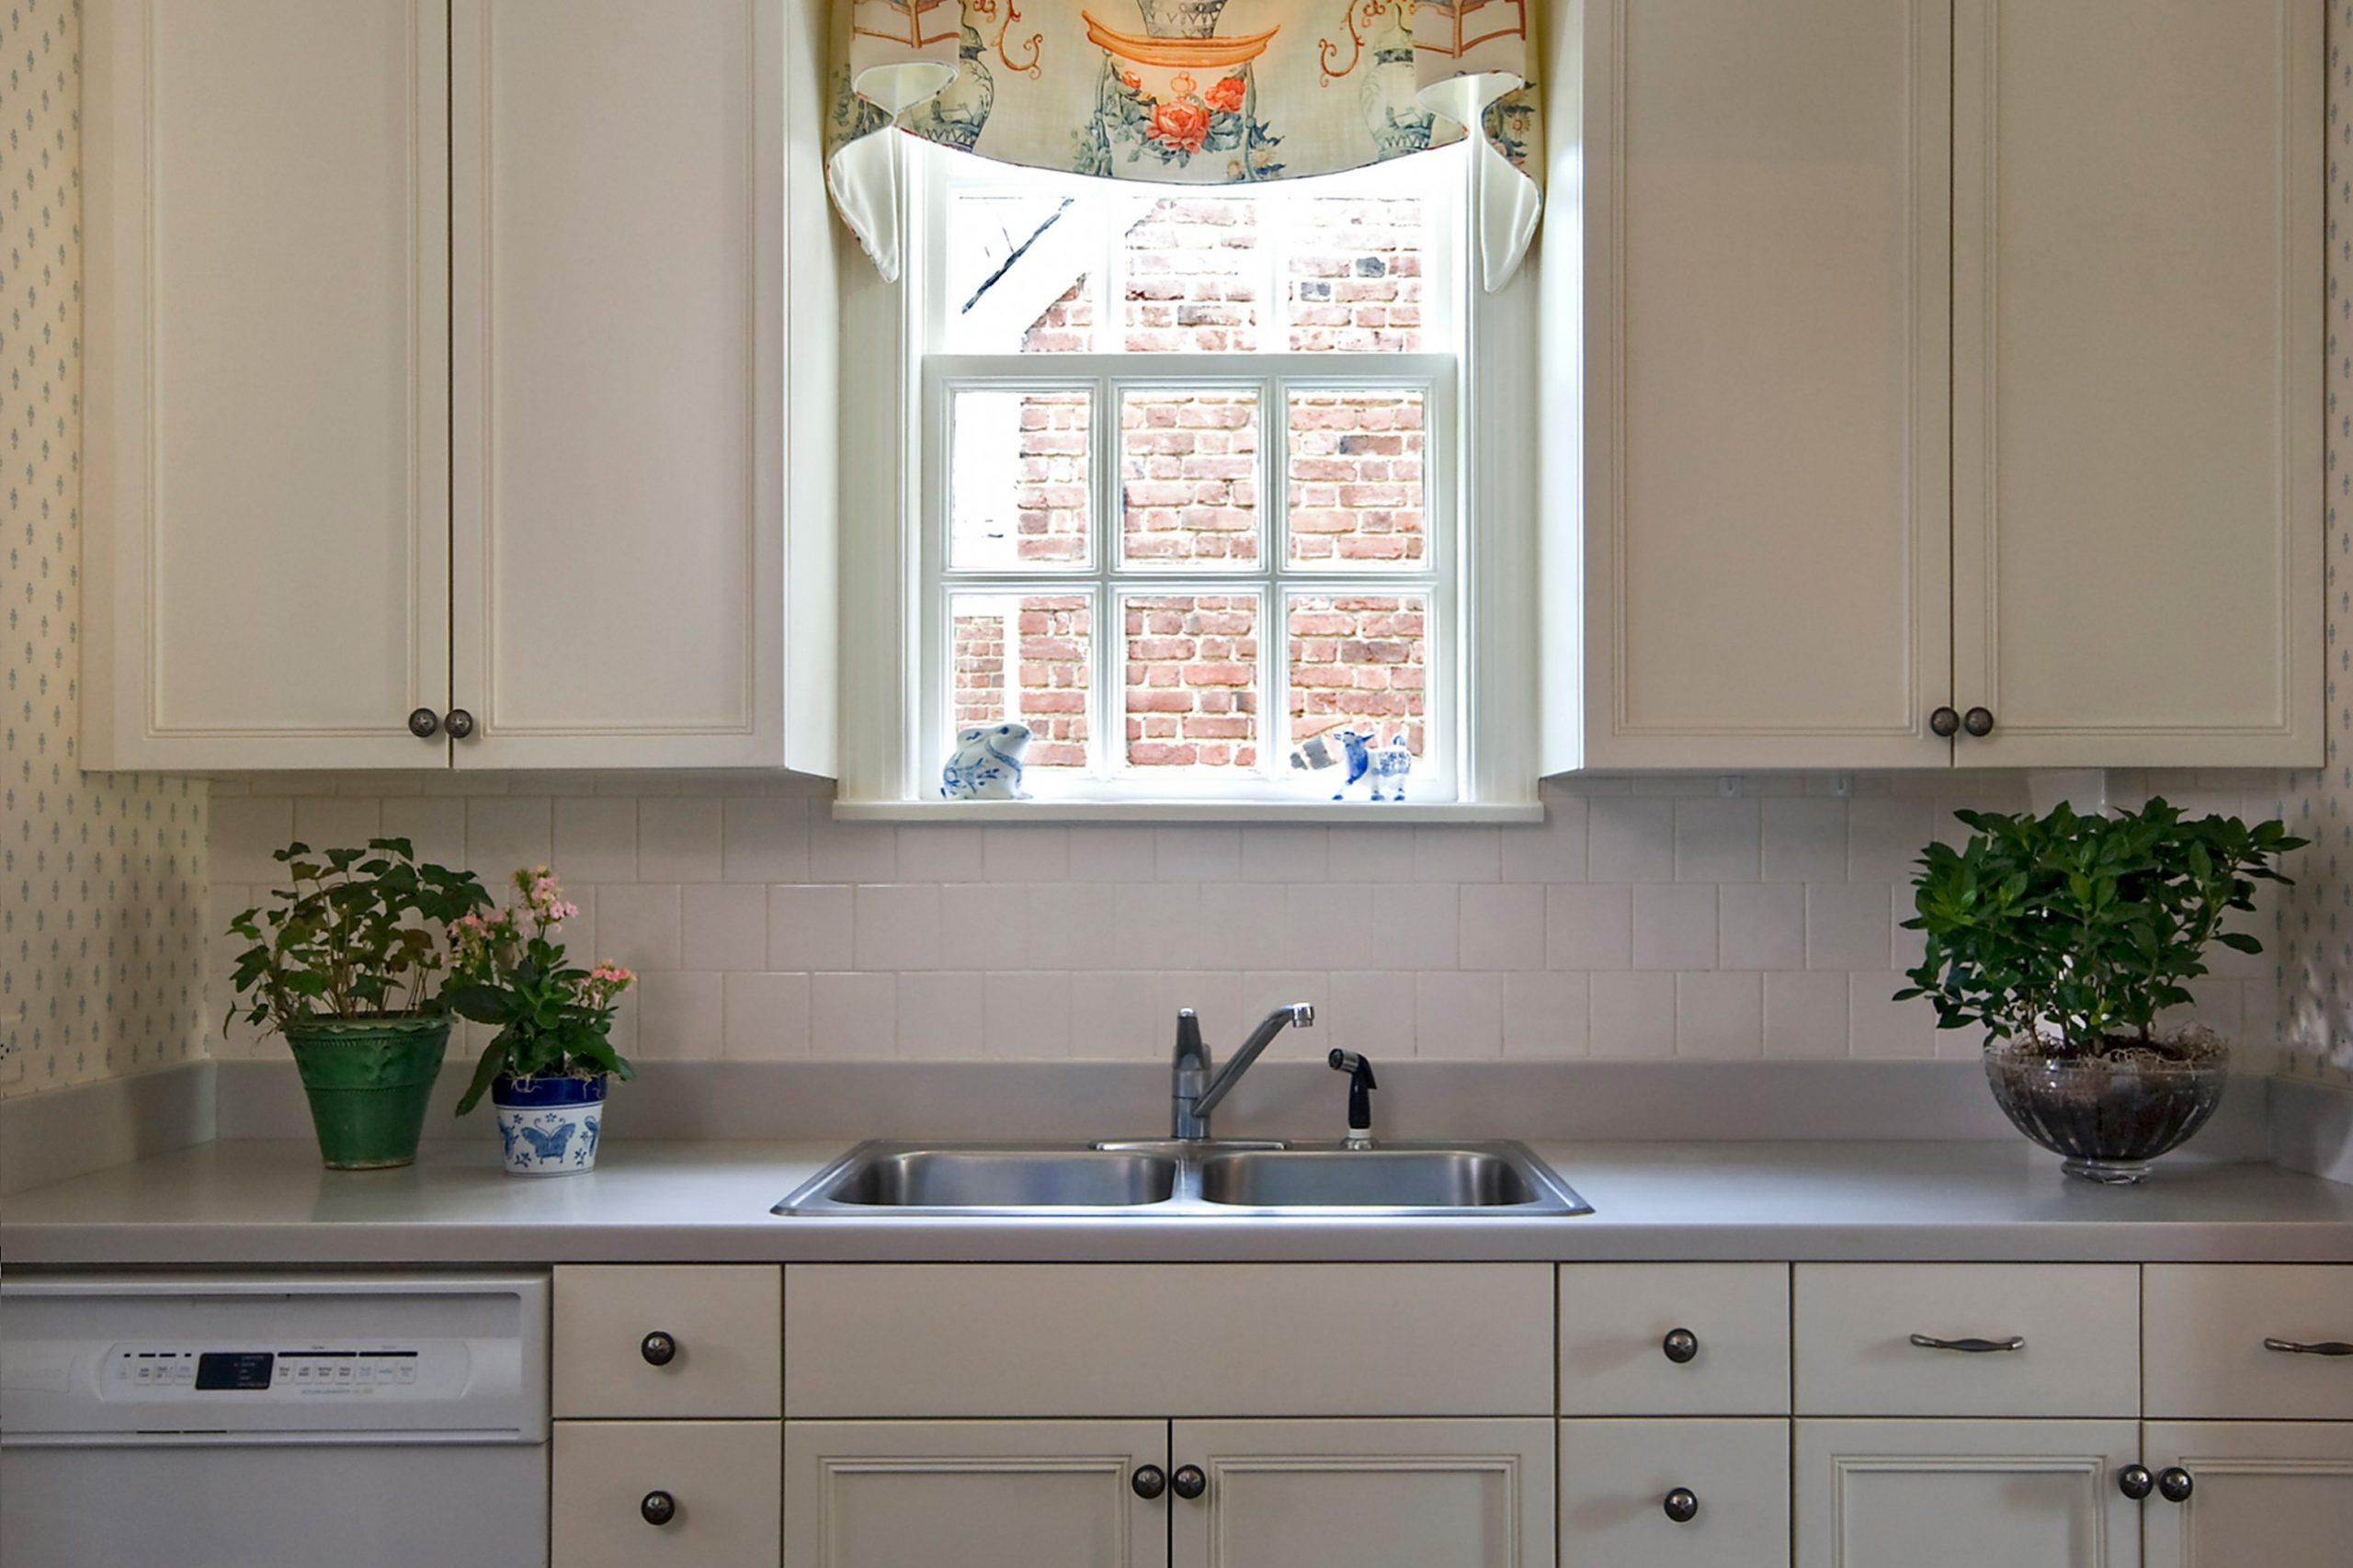 Kitchen Cabinet Refacing  Kitchen Refacing Cost - Kitchen Cabinet Replacement Average Cost